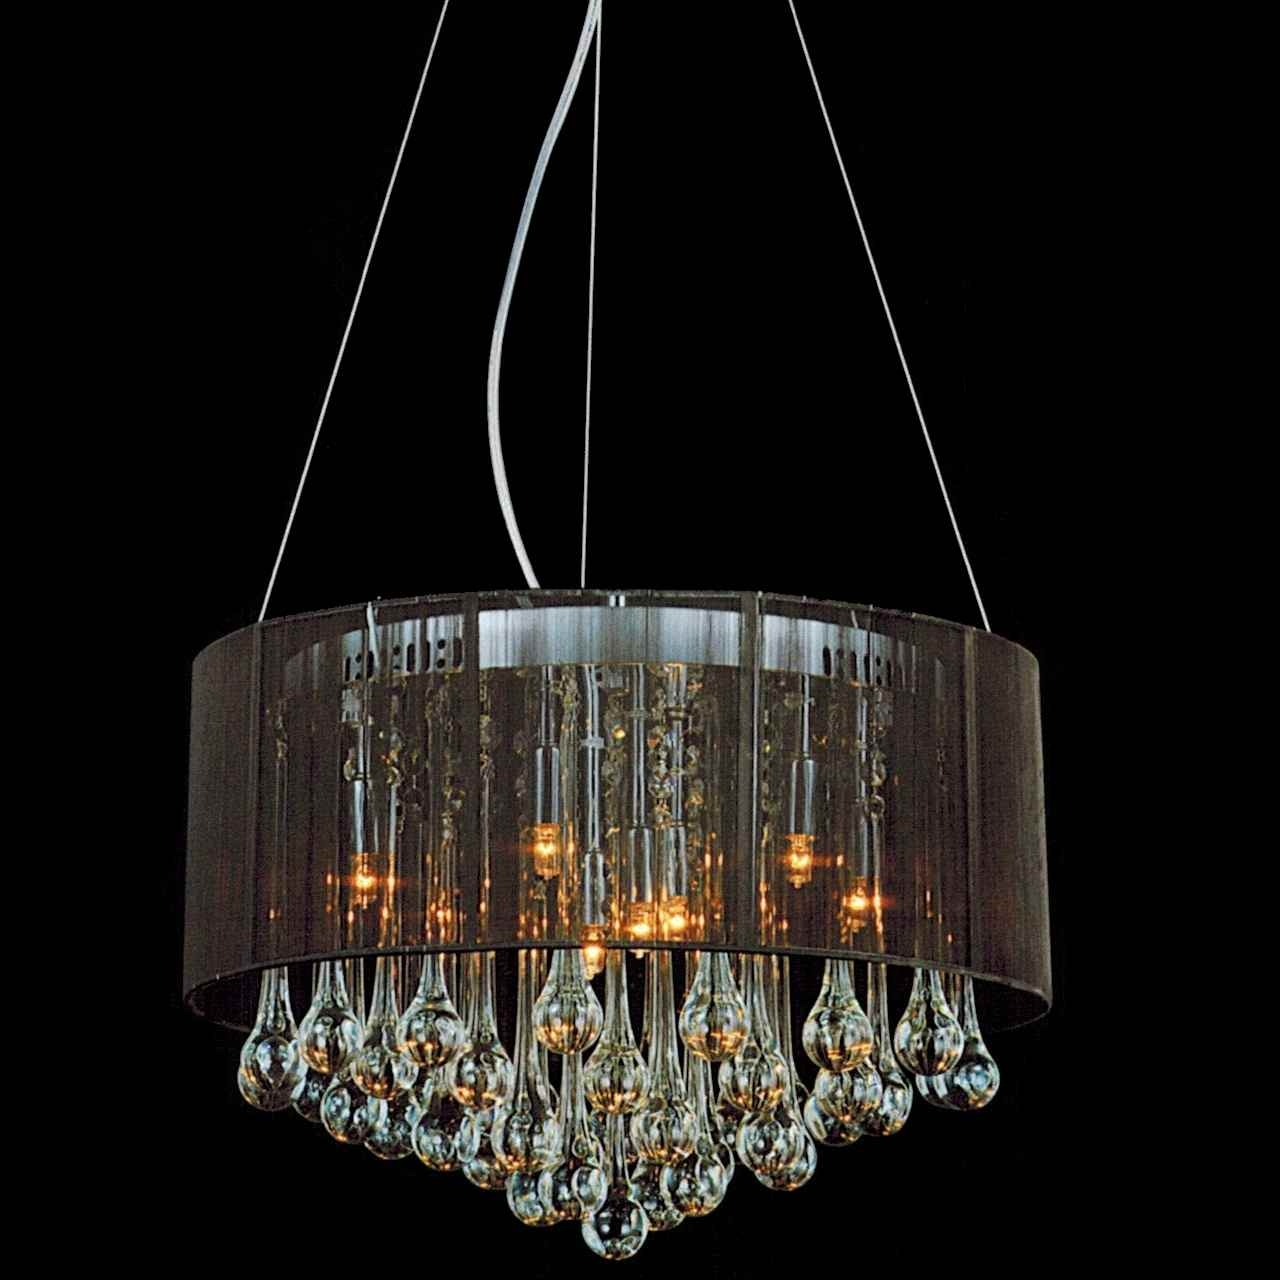 Brizzo Lighting Stores 18 Gocce Modern String Drum Shade Crystal Within Modern Silver Chandelier (#4 of 12)